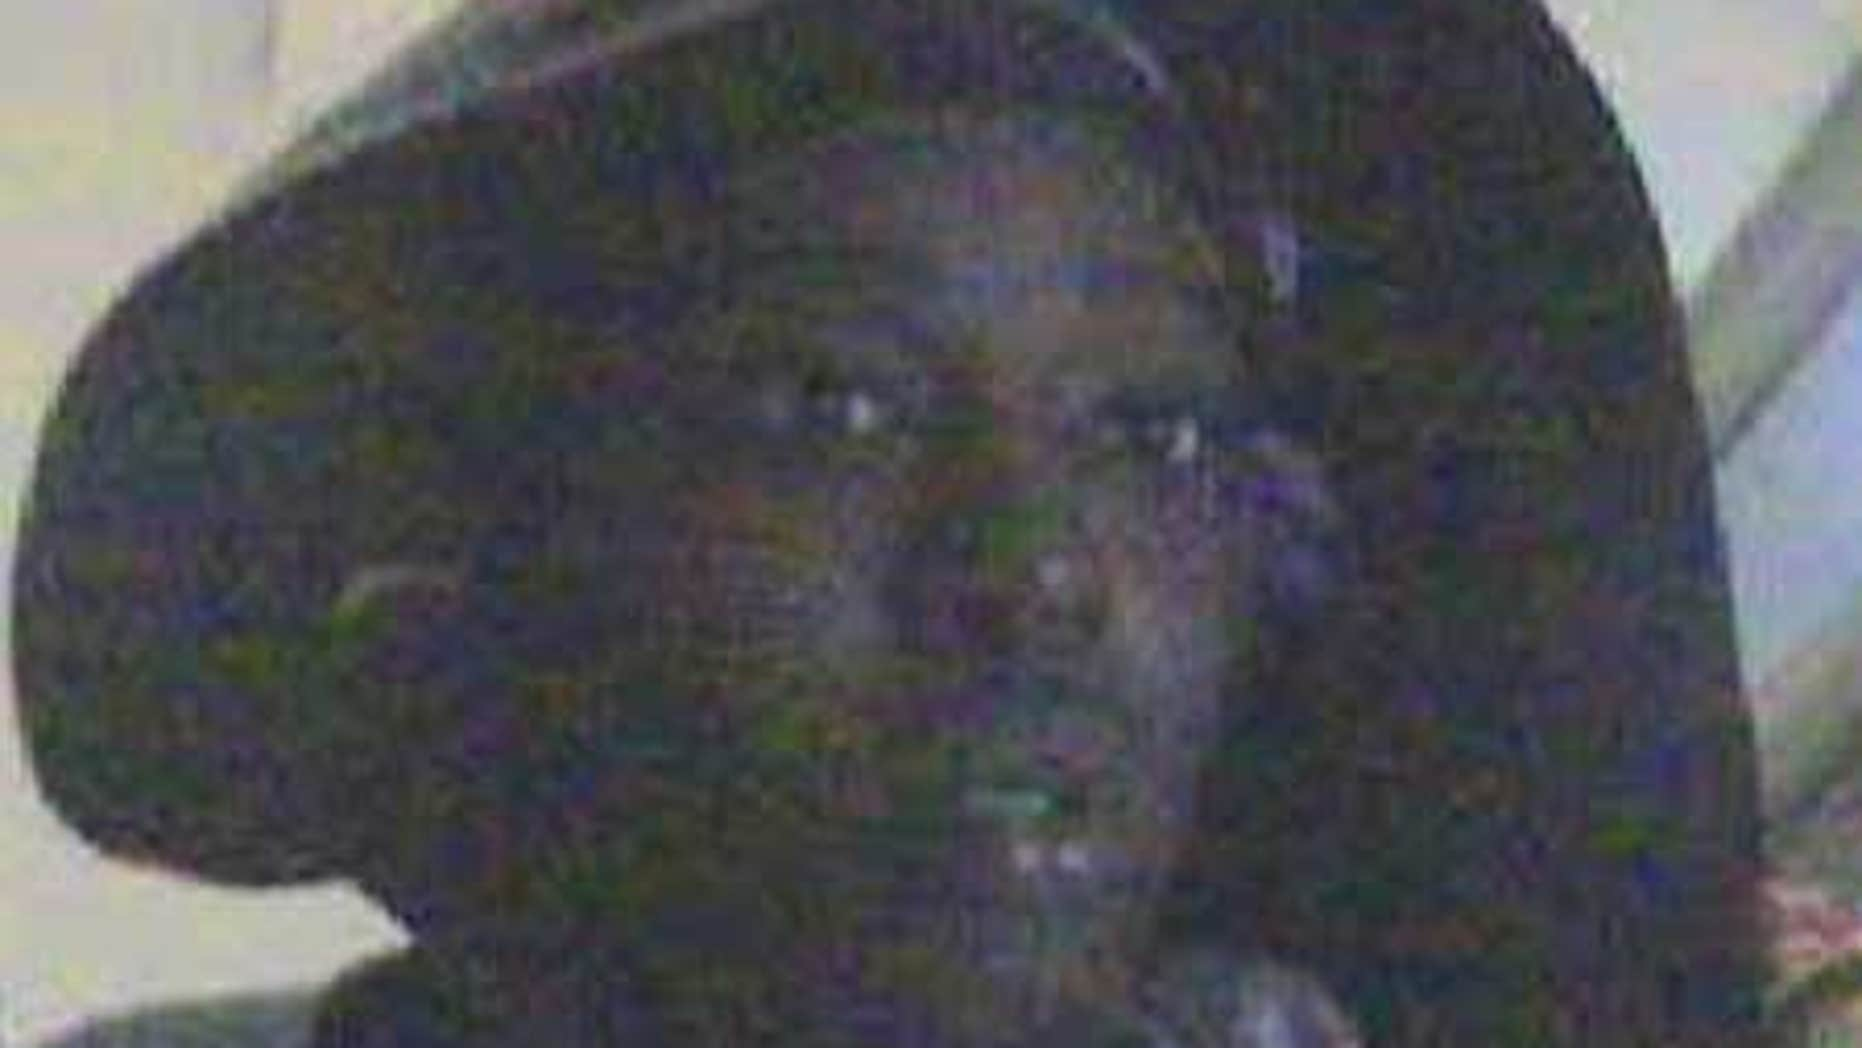 An alleged suspect in a worldwide $9M ATM scam, caught on security camera